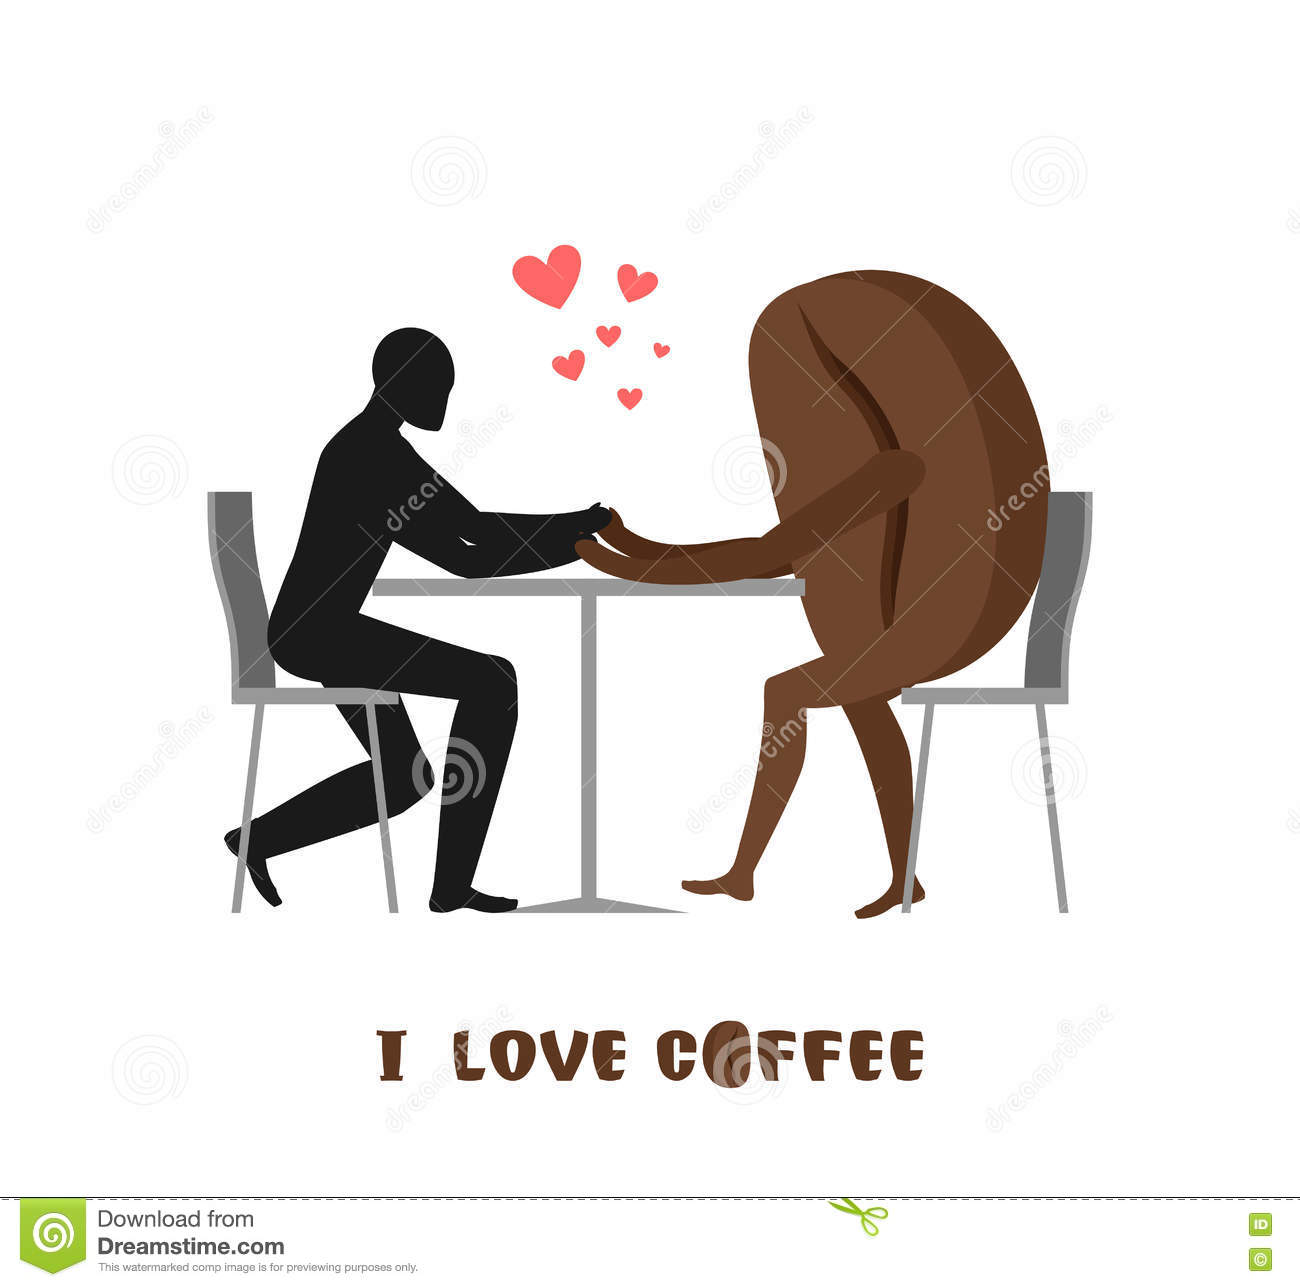 coffee-lovers-lover-cafe-man-coffee-bean